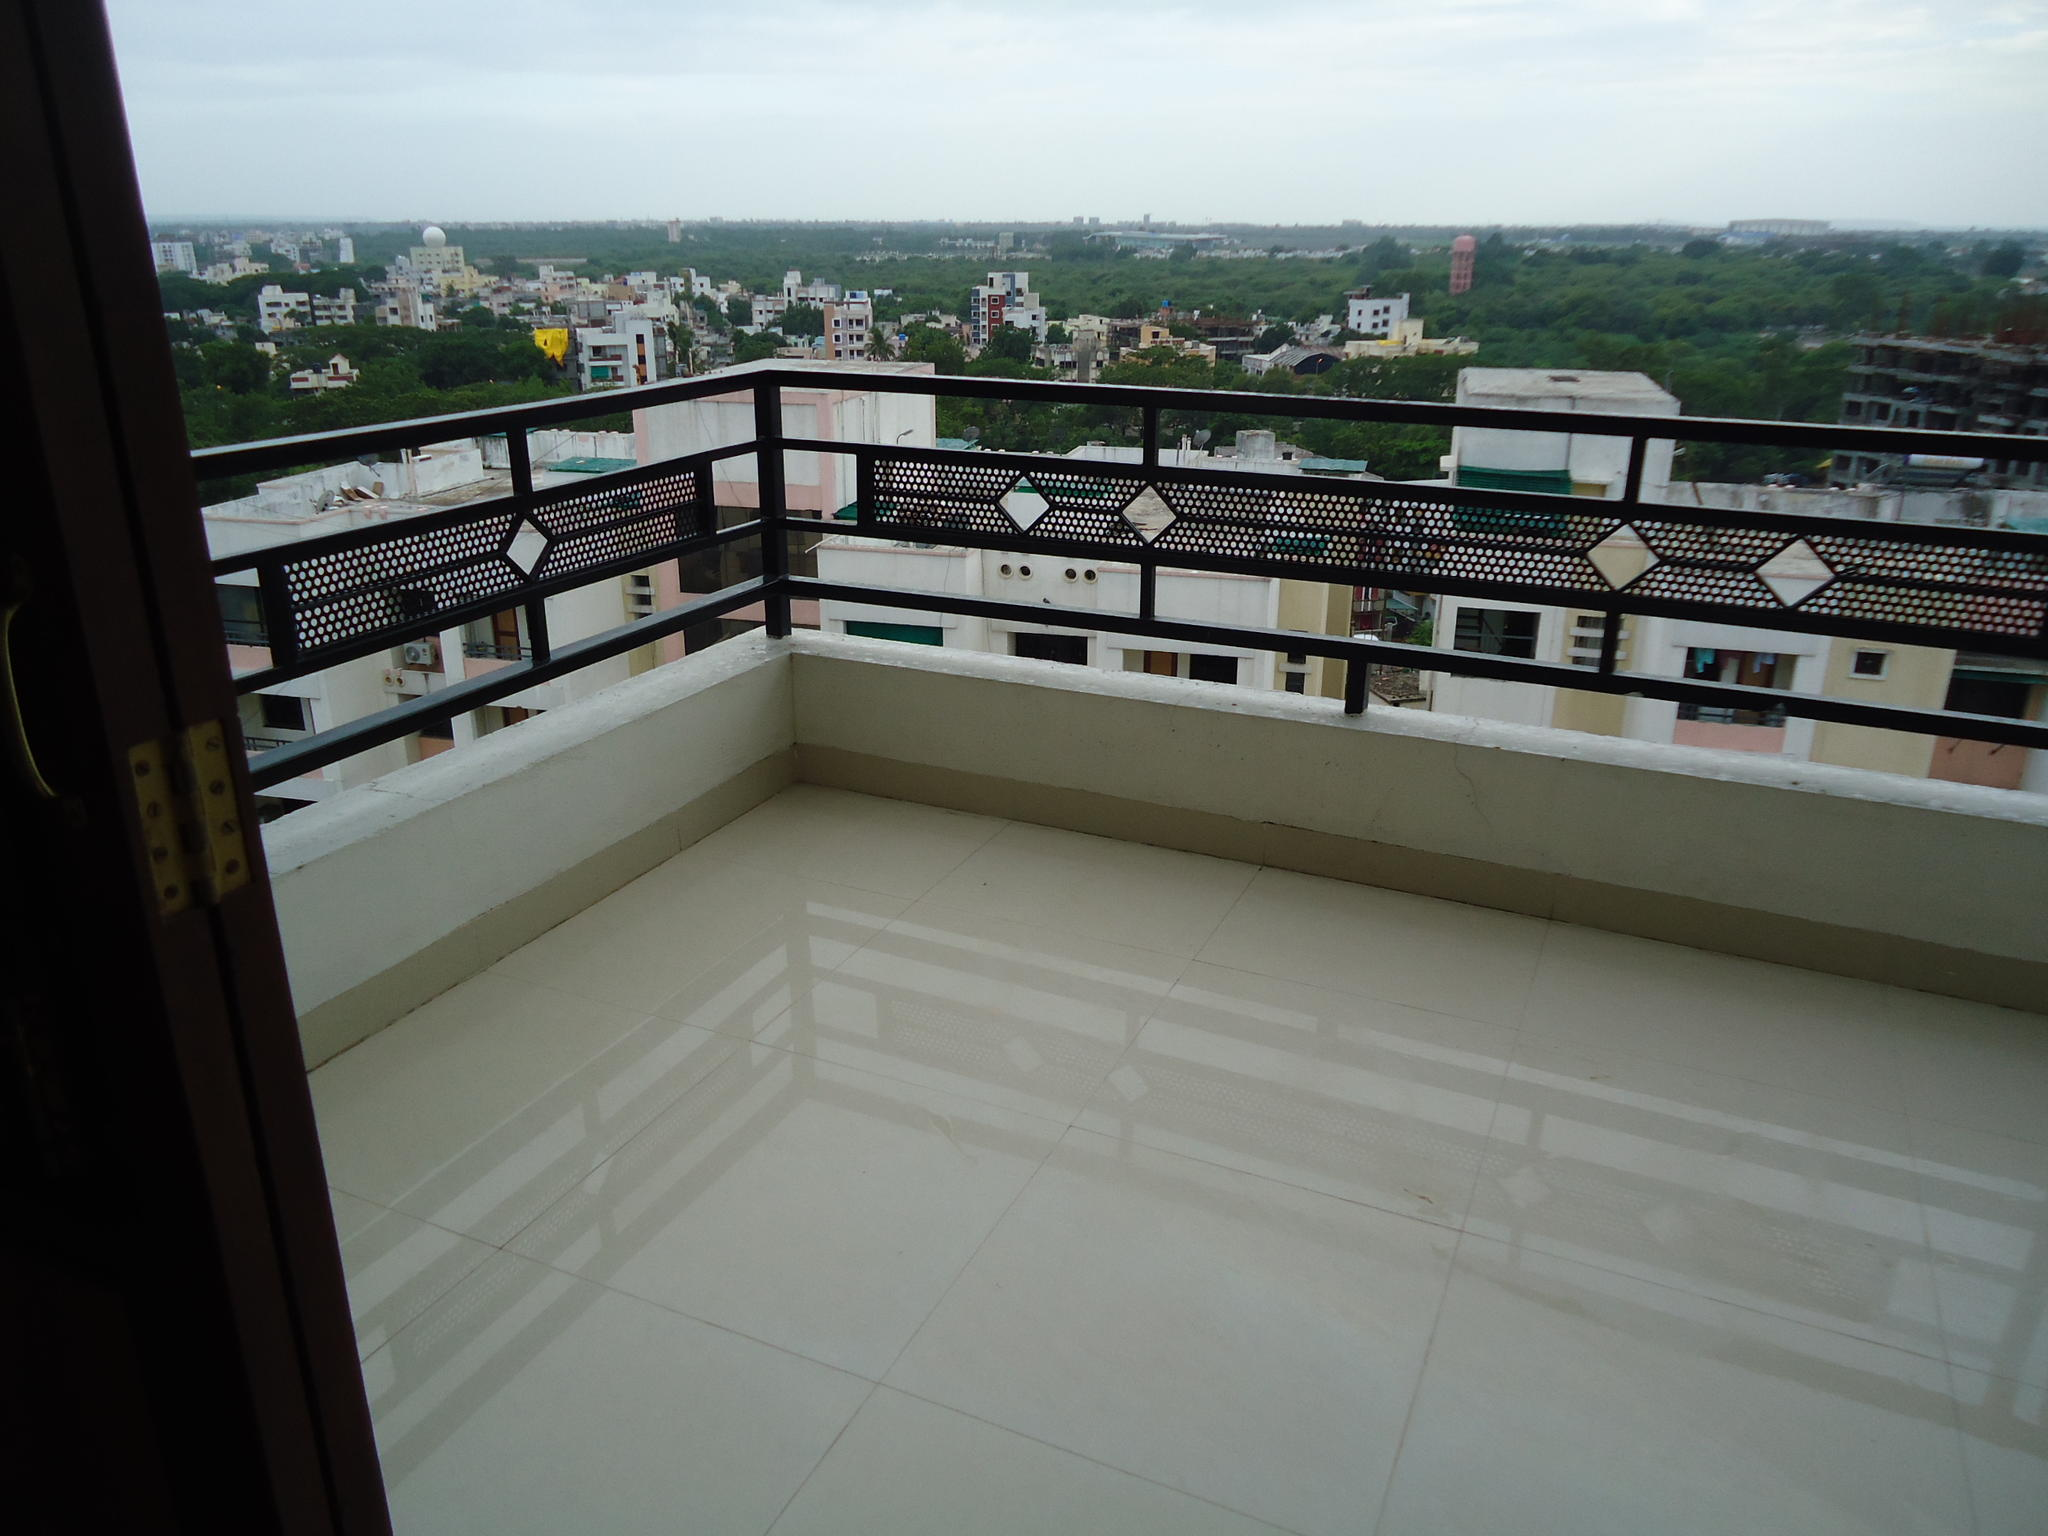 3bhk fully furnished apartment for rent at khamla nagpur ,every amenities is their